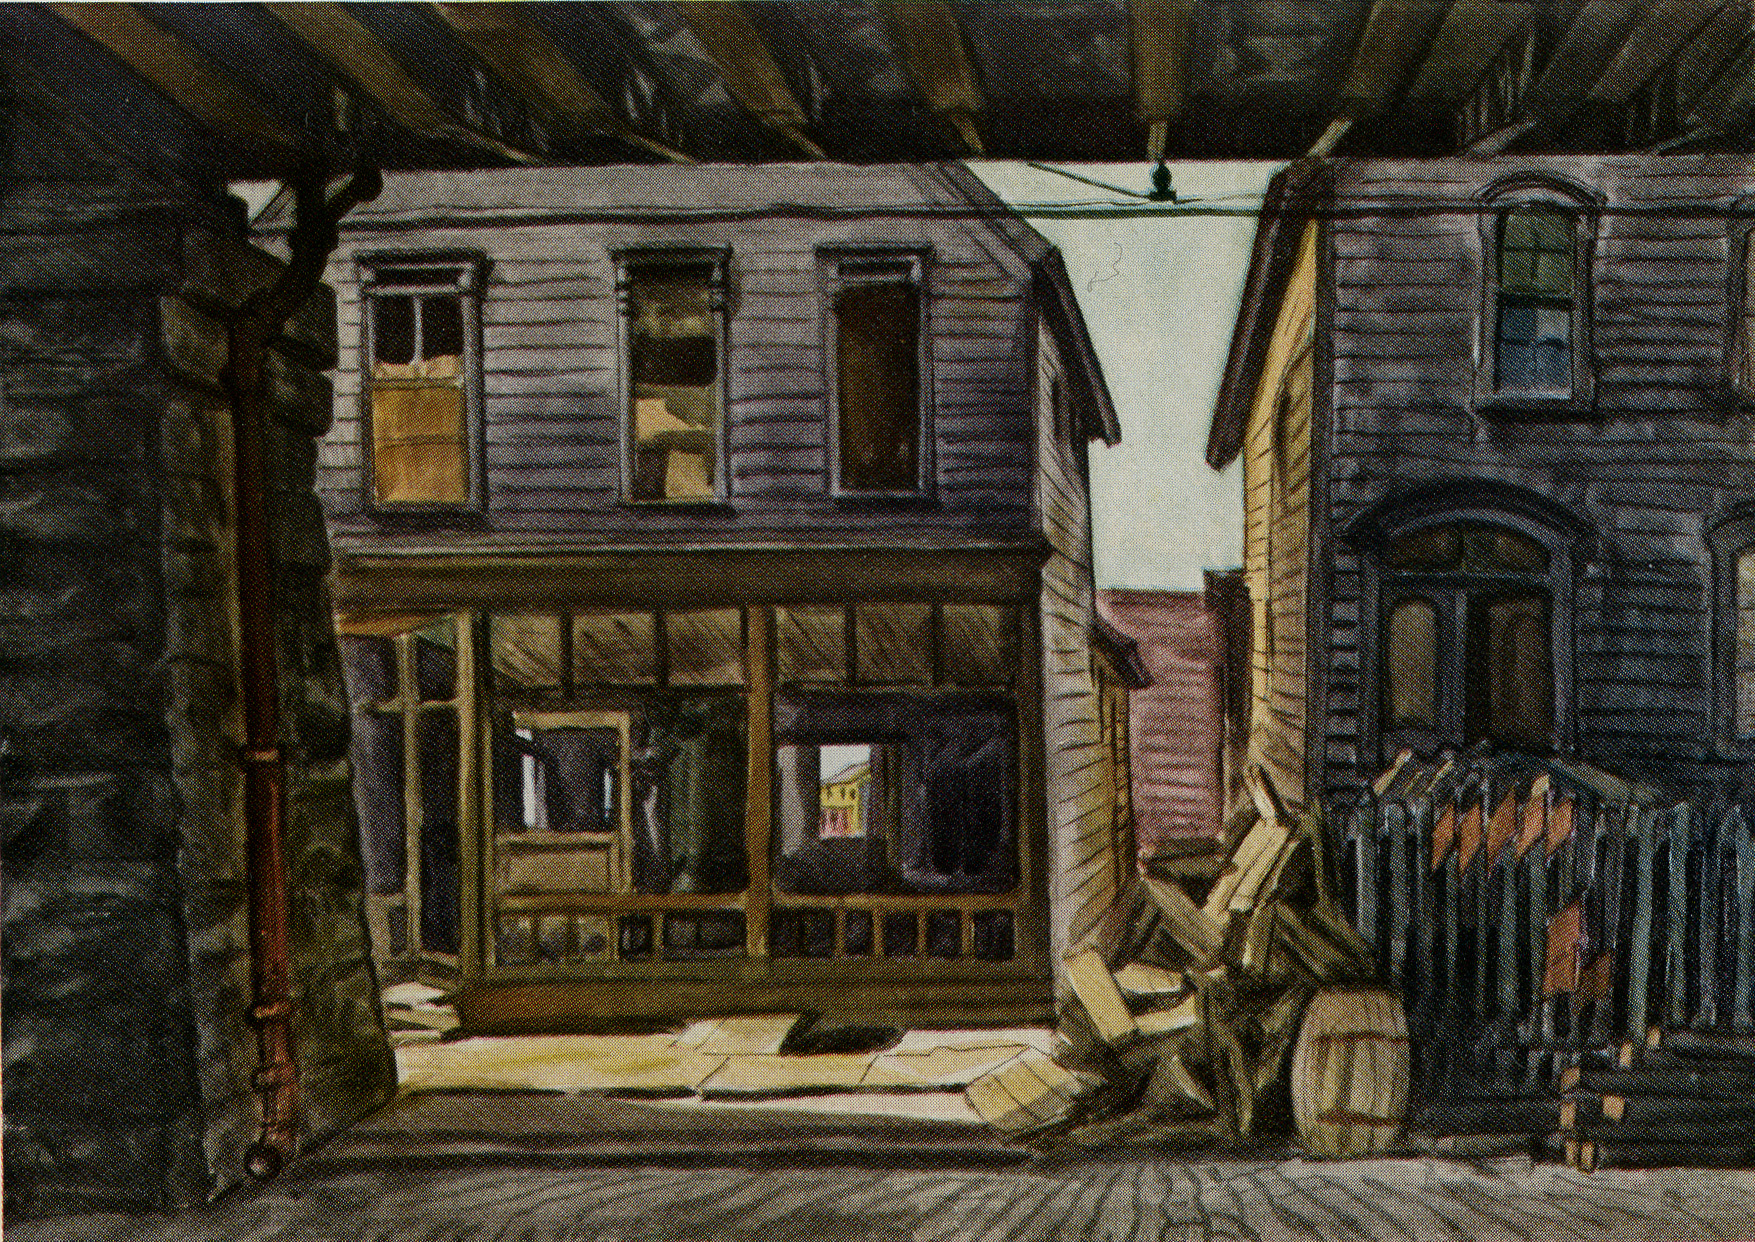 two-houses-under-a-viaduct-1926-1933-burchfield